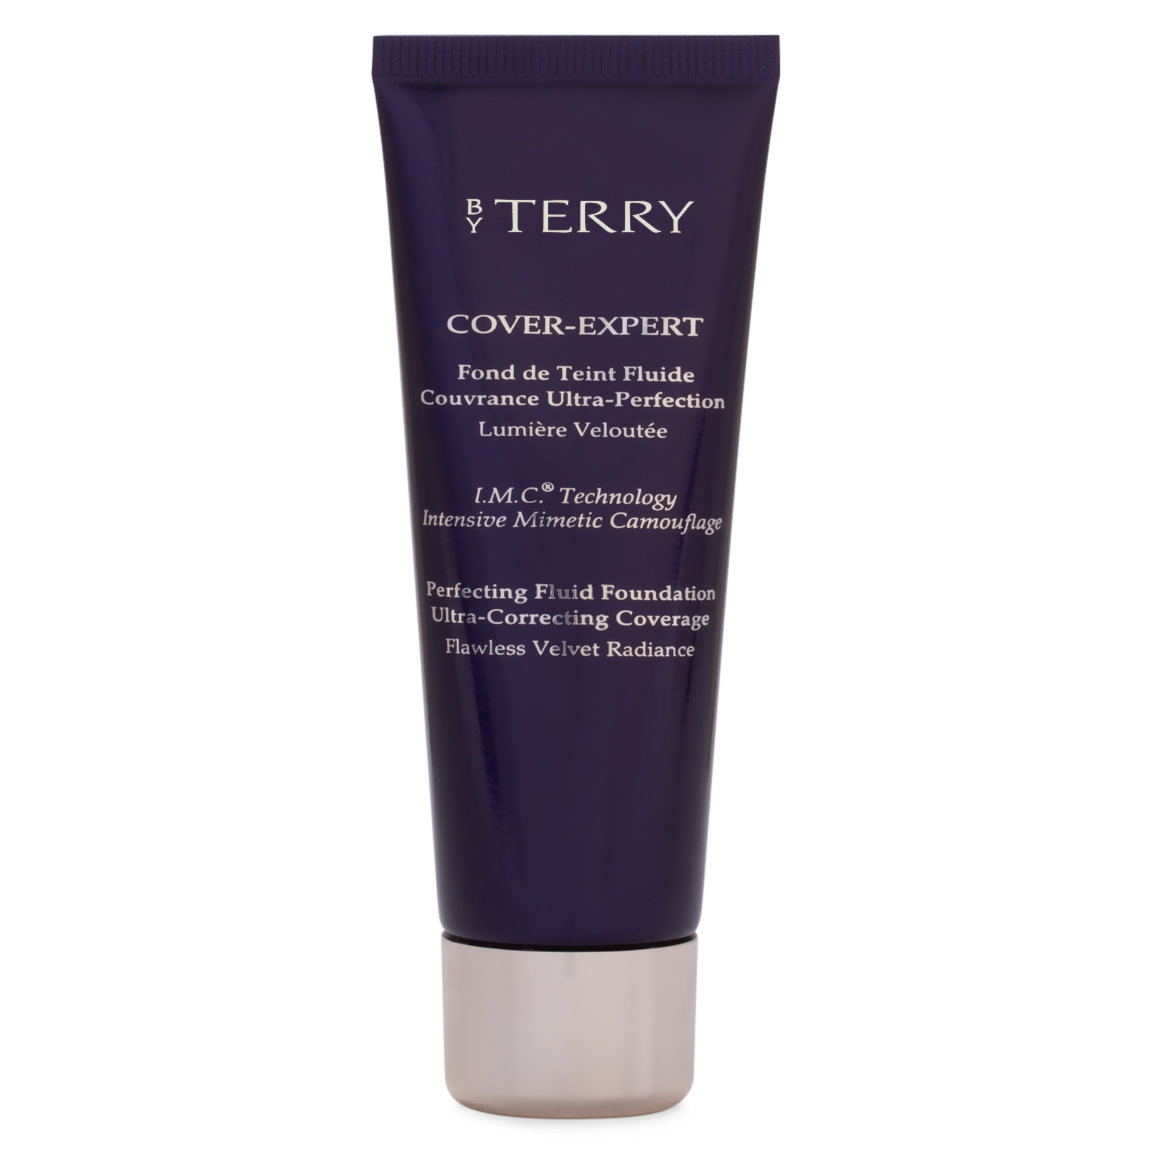 BY TERRY Cover-Expert Perfecting Fluid Foundation 12 Warm Copper alternative view 1.